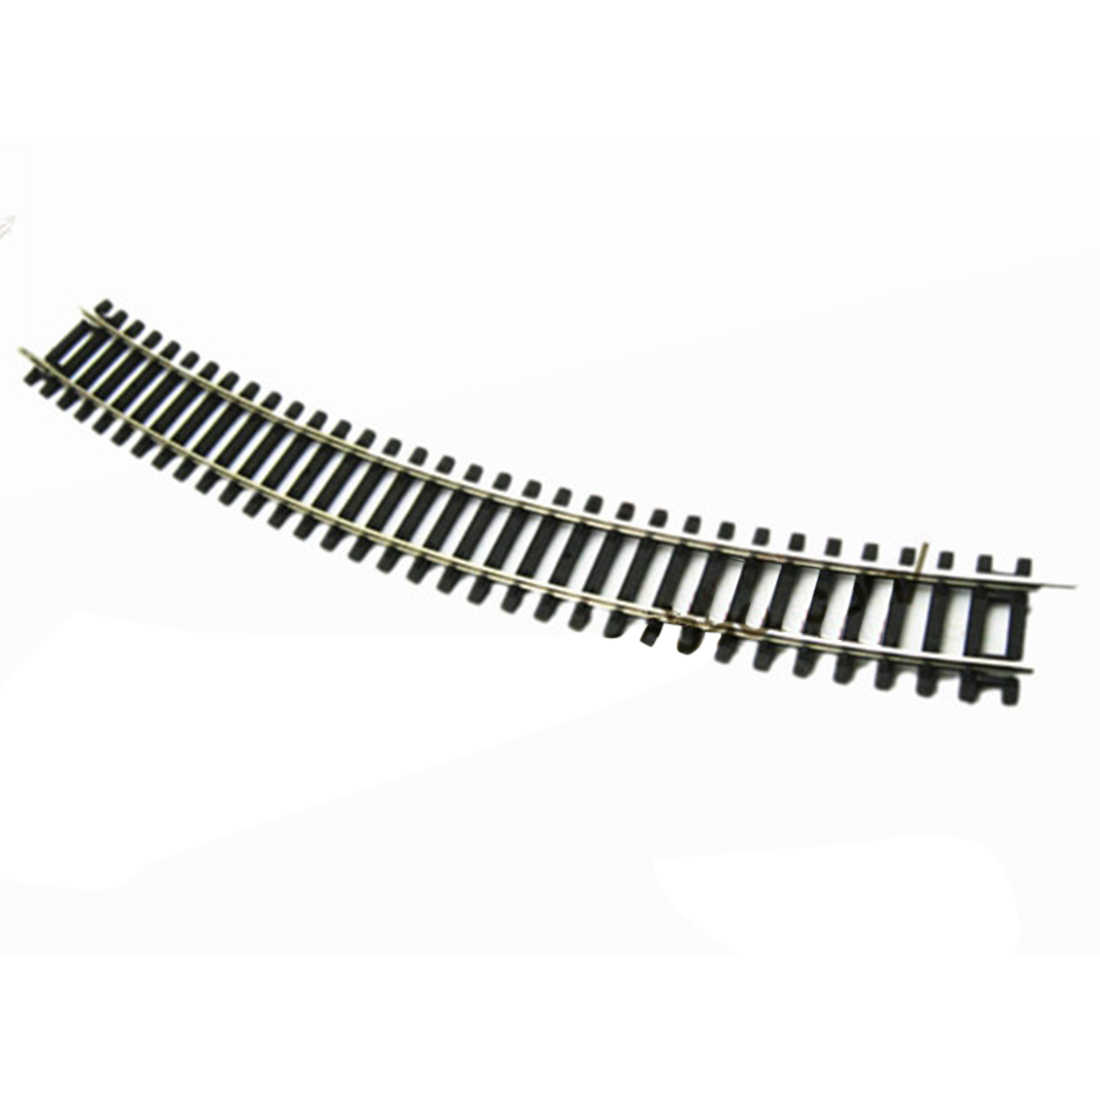 1:87 DIY HO Scale R3 30°Curved Track Track for Train Model - Black